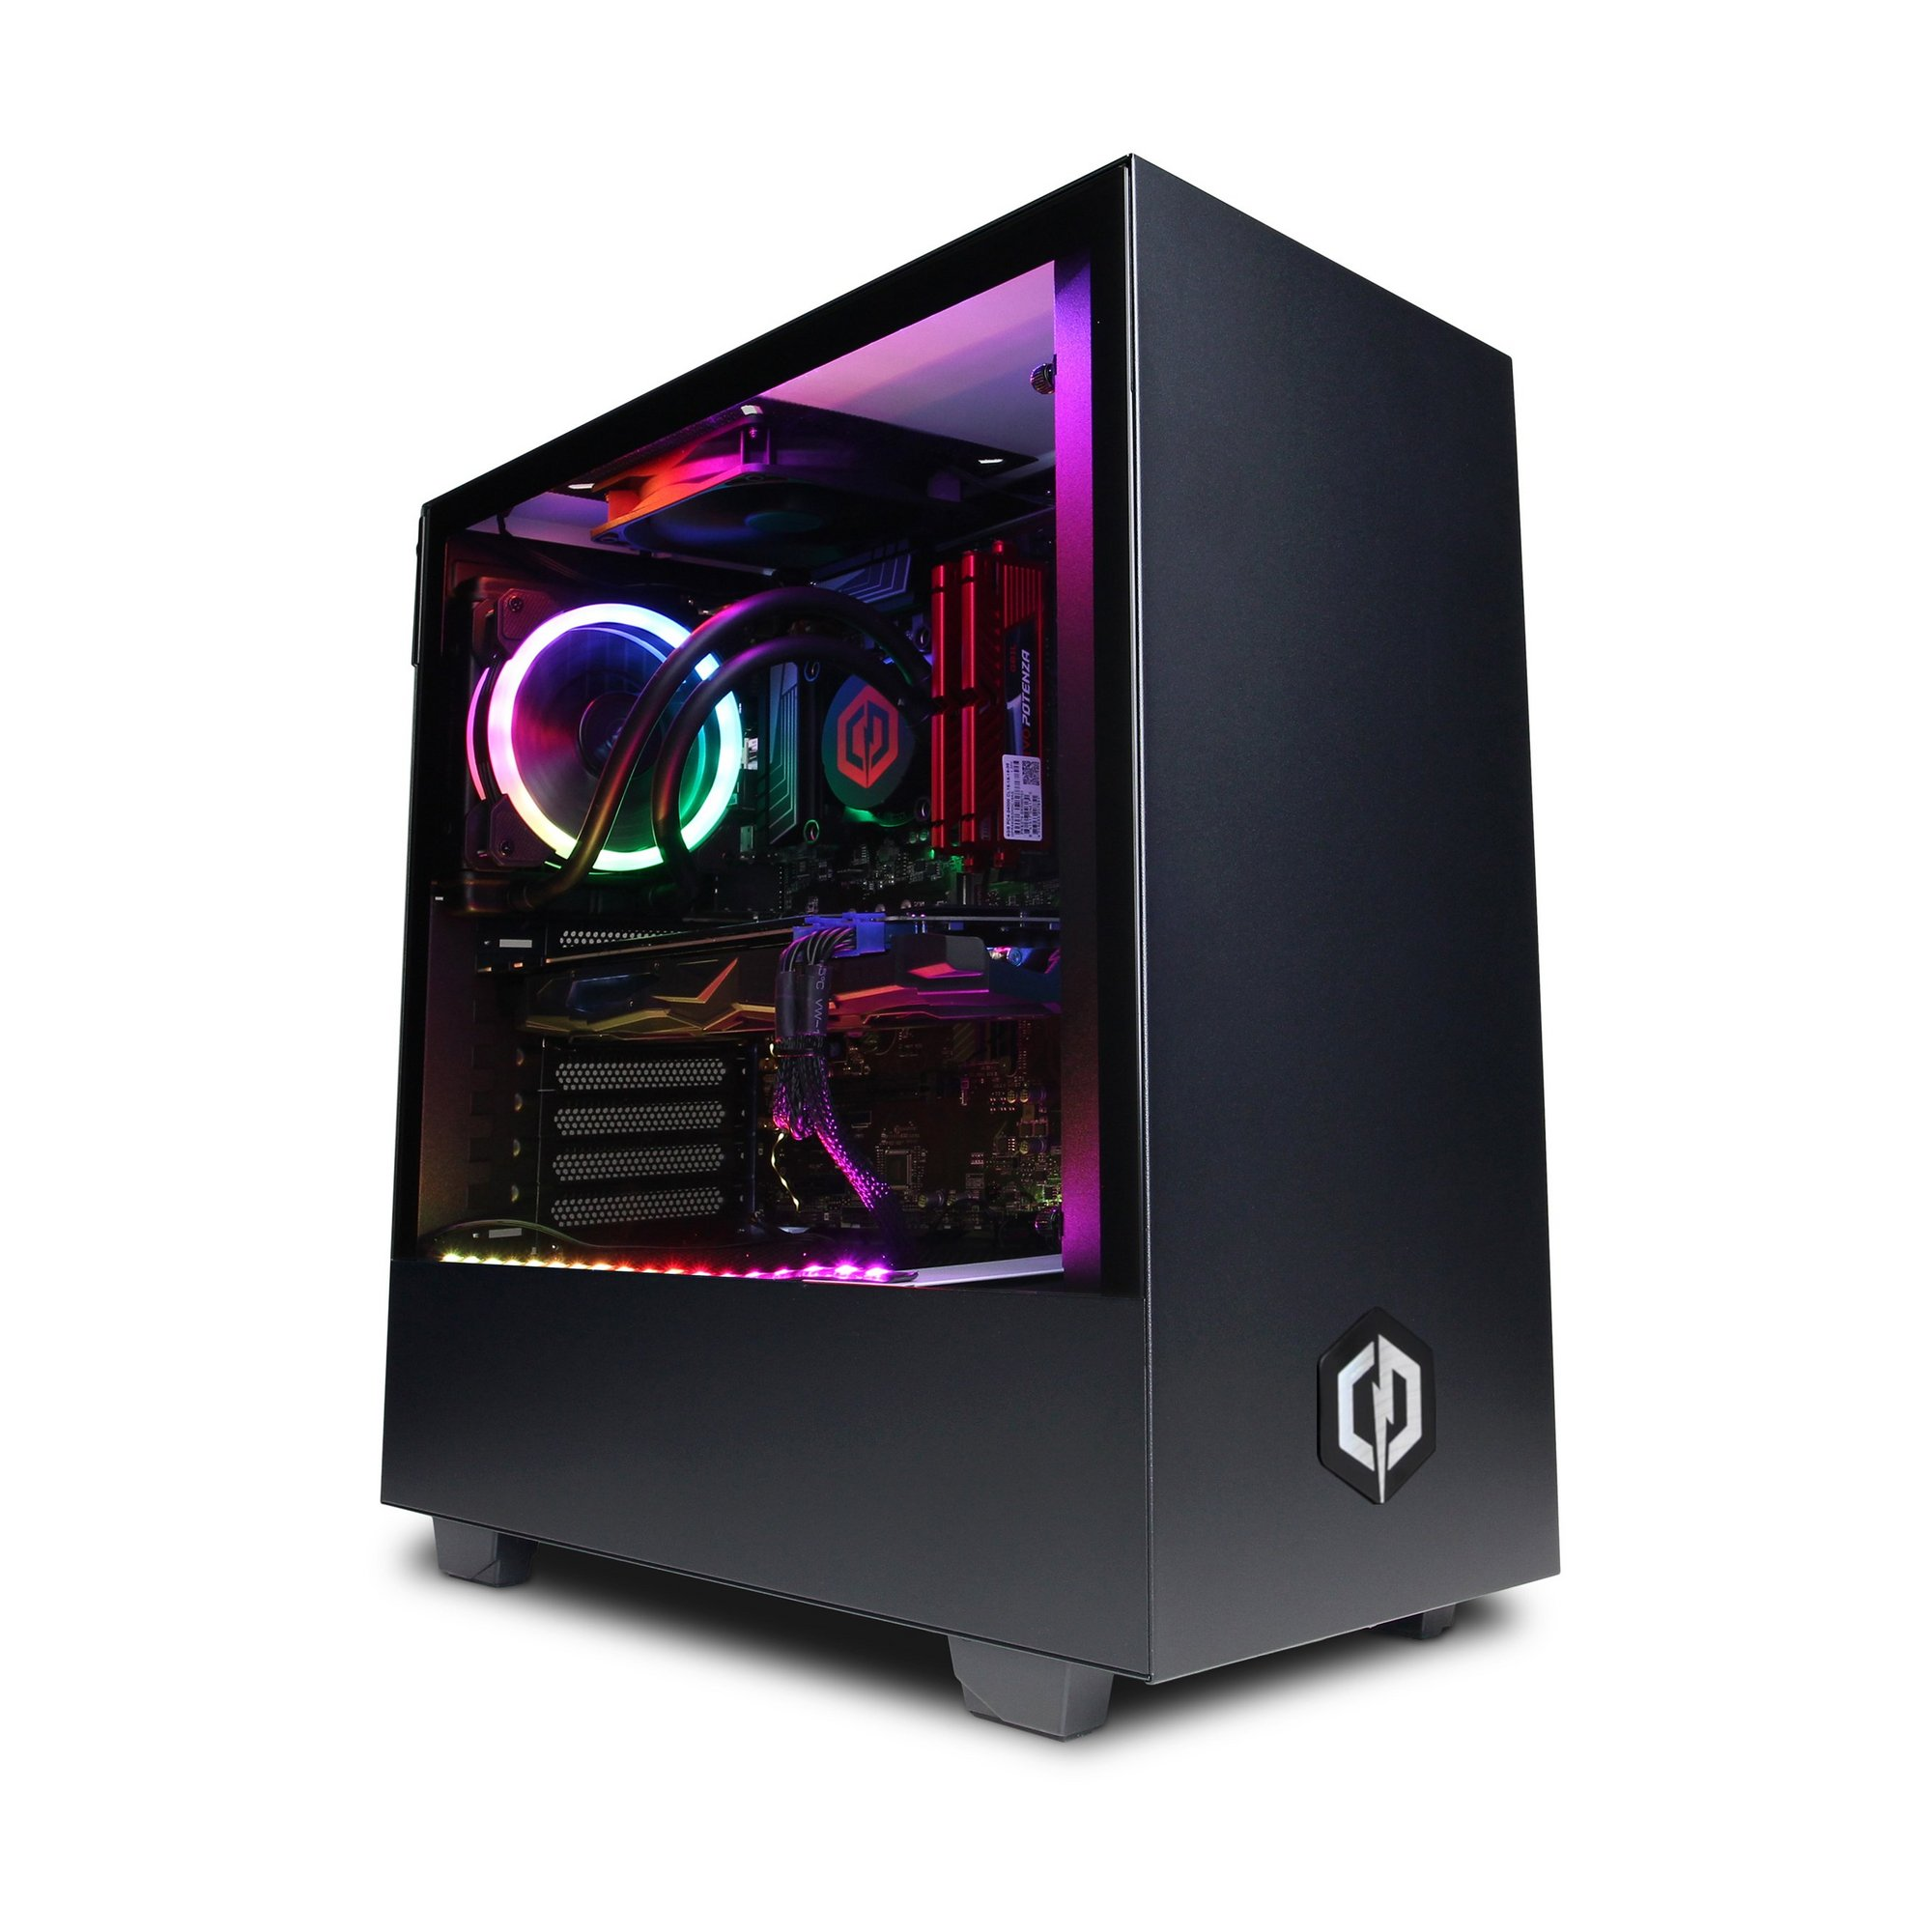 Image of Cyberpower Intel i5 9400F RTX 2060 Gaming PC